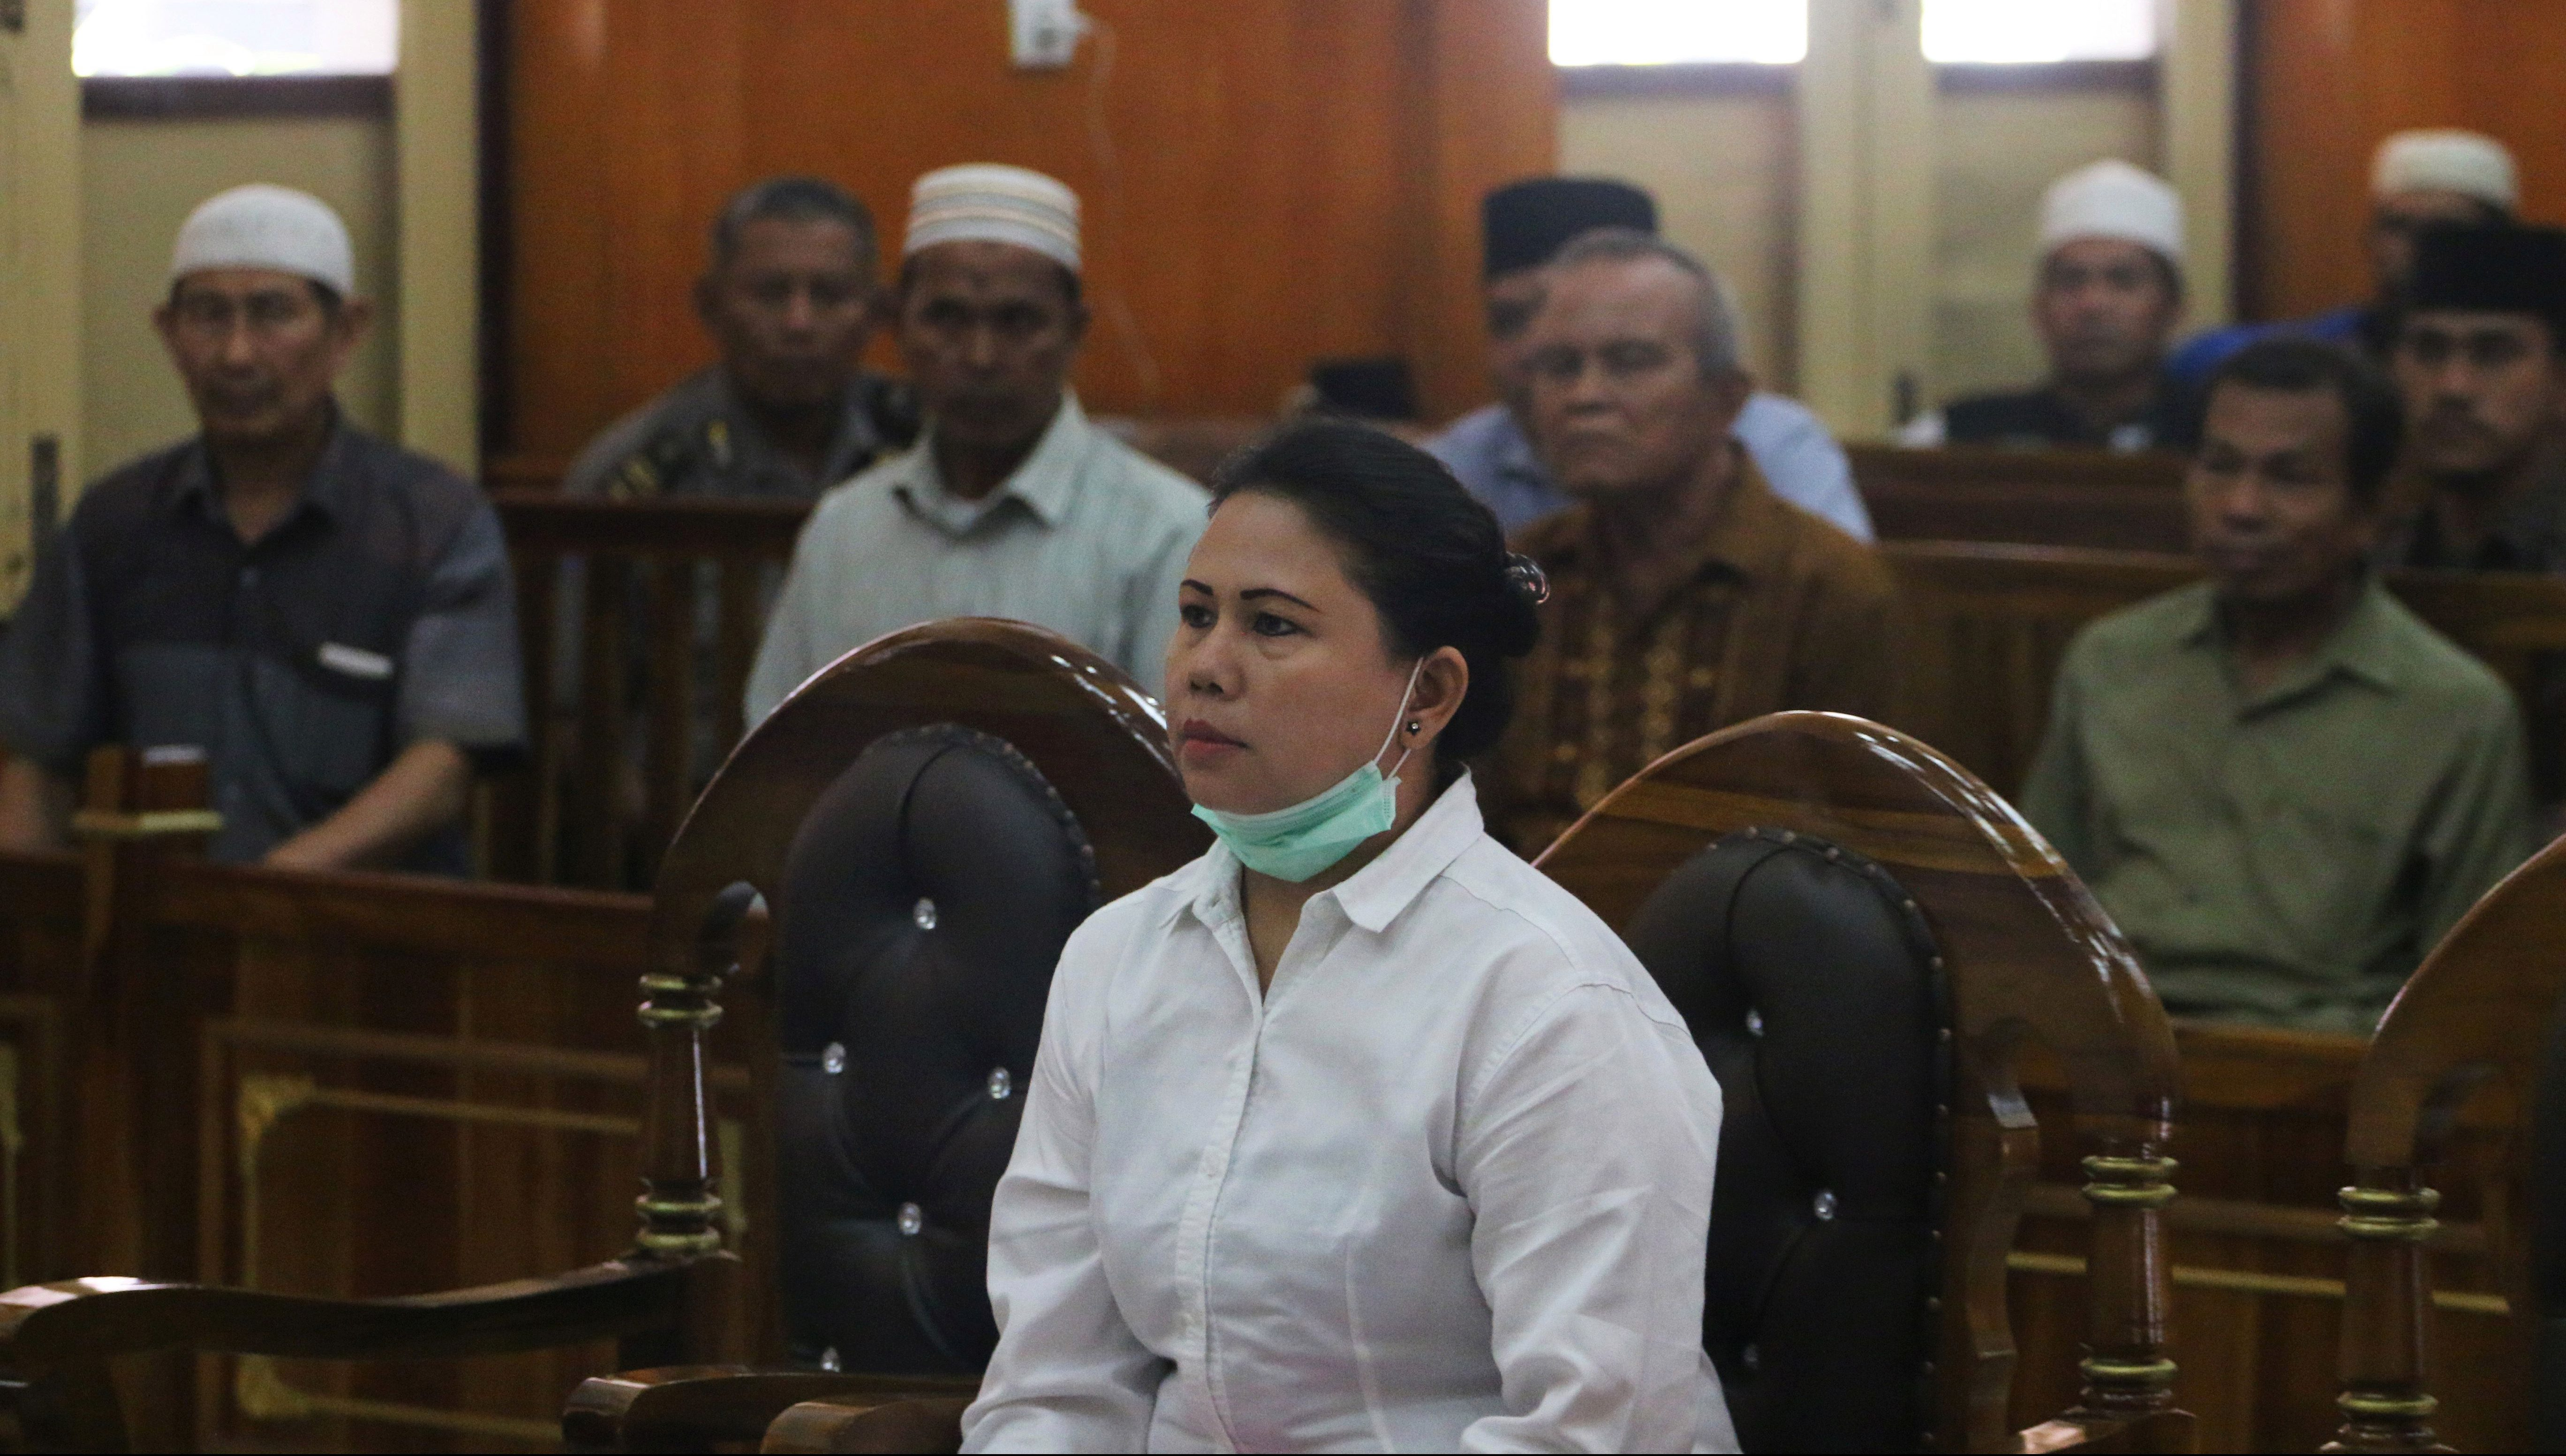 Meiliana, a 44-year-old ethnic Chinese Buddhist, sits in a courtroom for blasphemy charges, in Medan, Sumatra, Indonesia August 21, 2018.